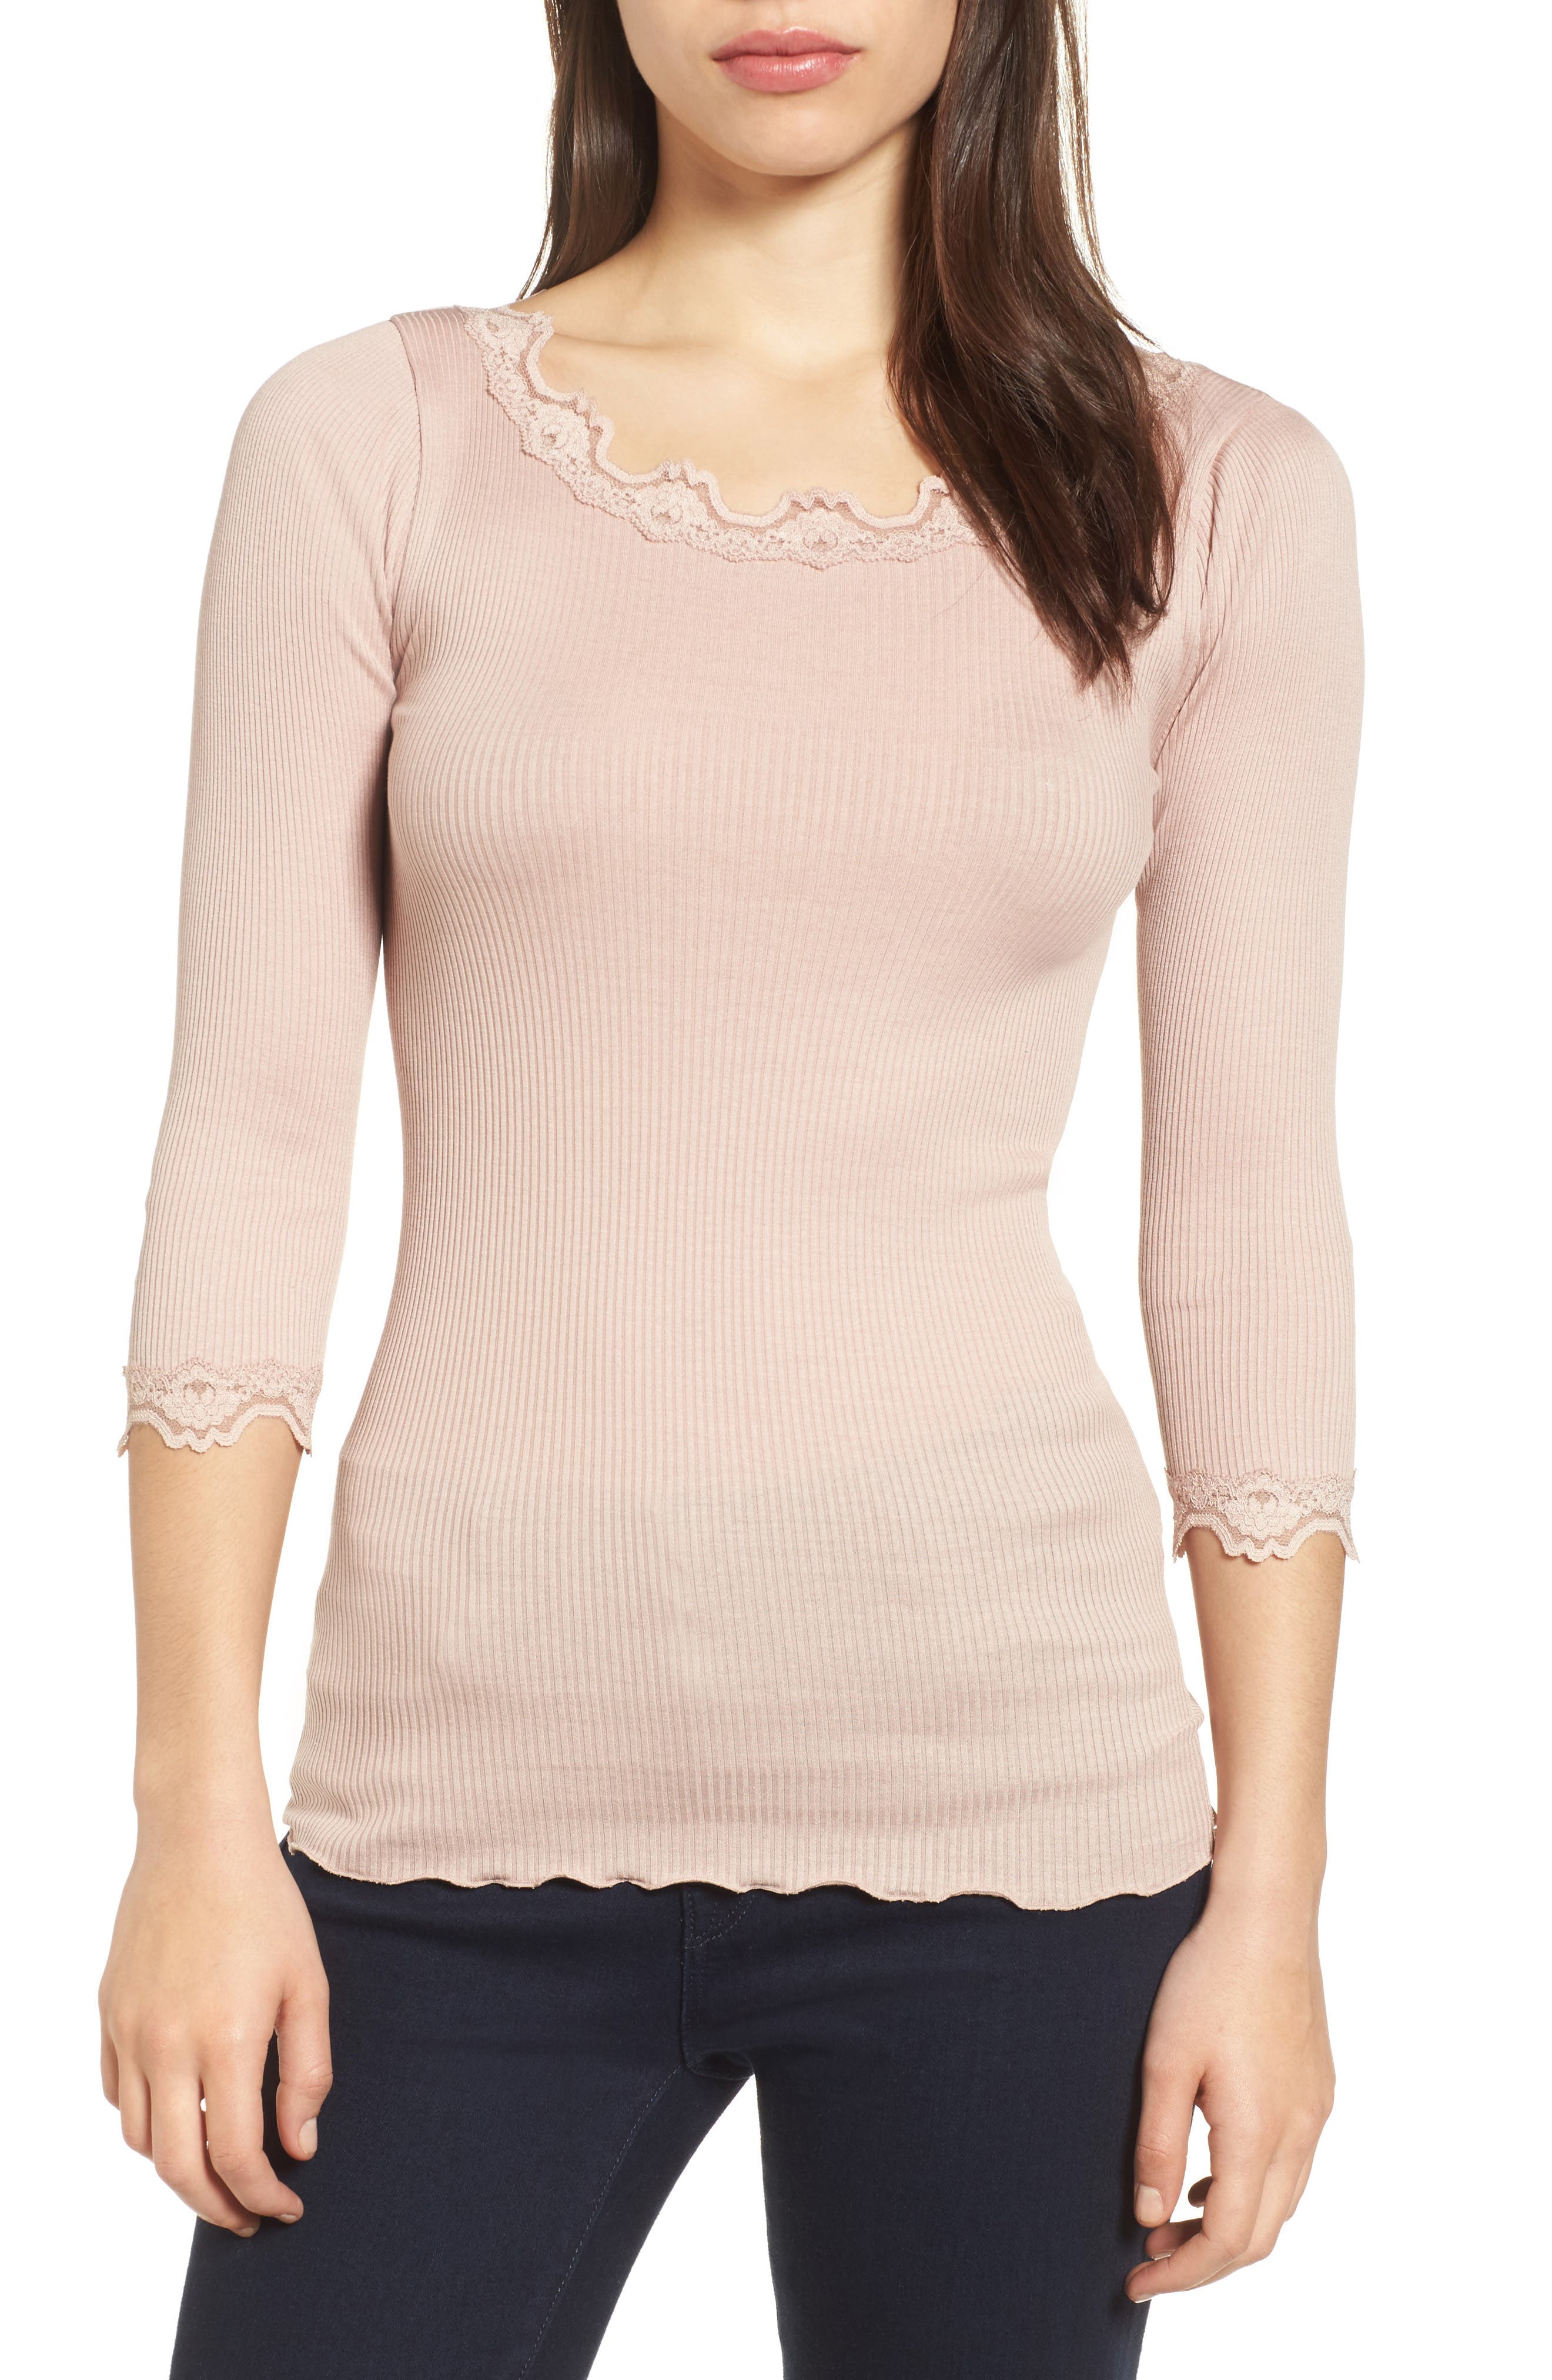 Main Image - Rosemunde Babette Lace Trim Top